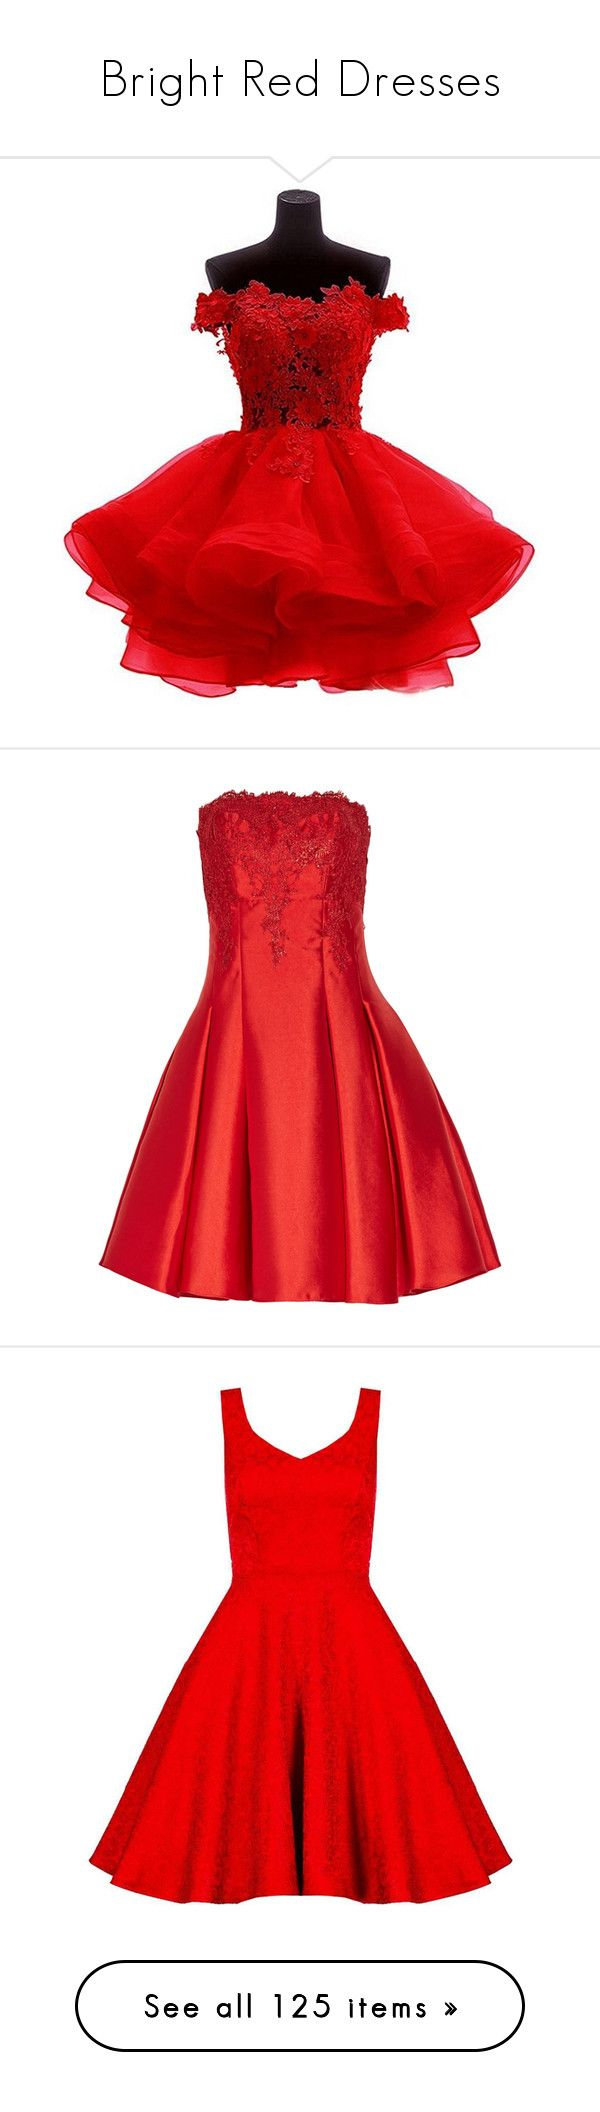 """Bright Red Dresses"" by tegan-b-riley on Polyvore featuring dresses, off the shoulder cocktail dress, lace homecoming dresses, lace dress, red lace cocktail dress, lace cocktail dresses, red, red mini dress, short lace dress and red dress"